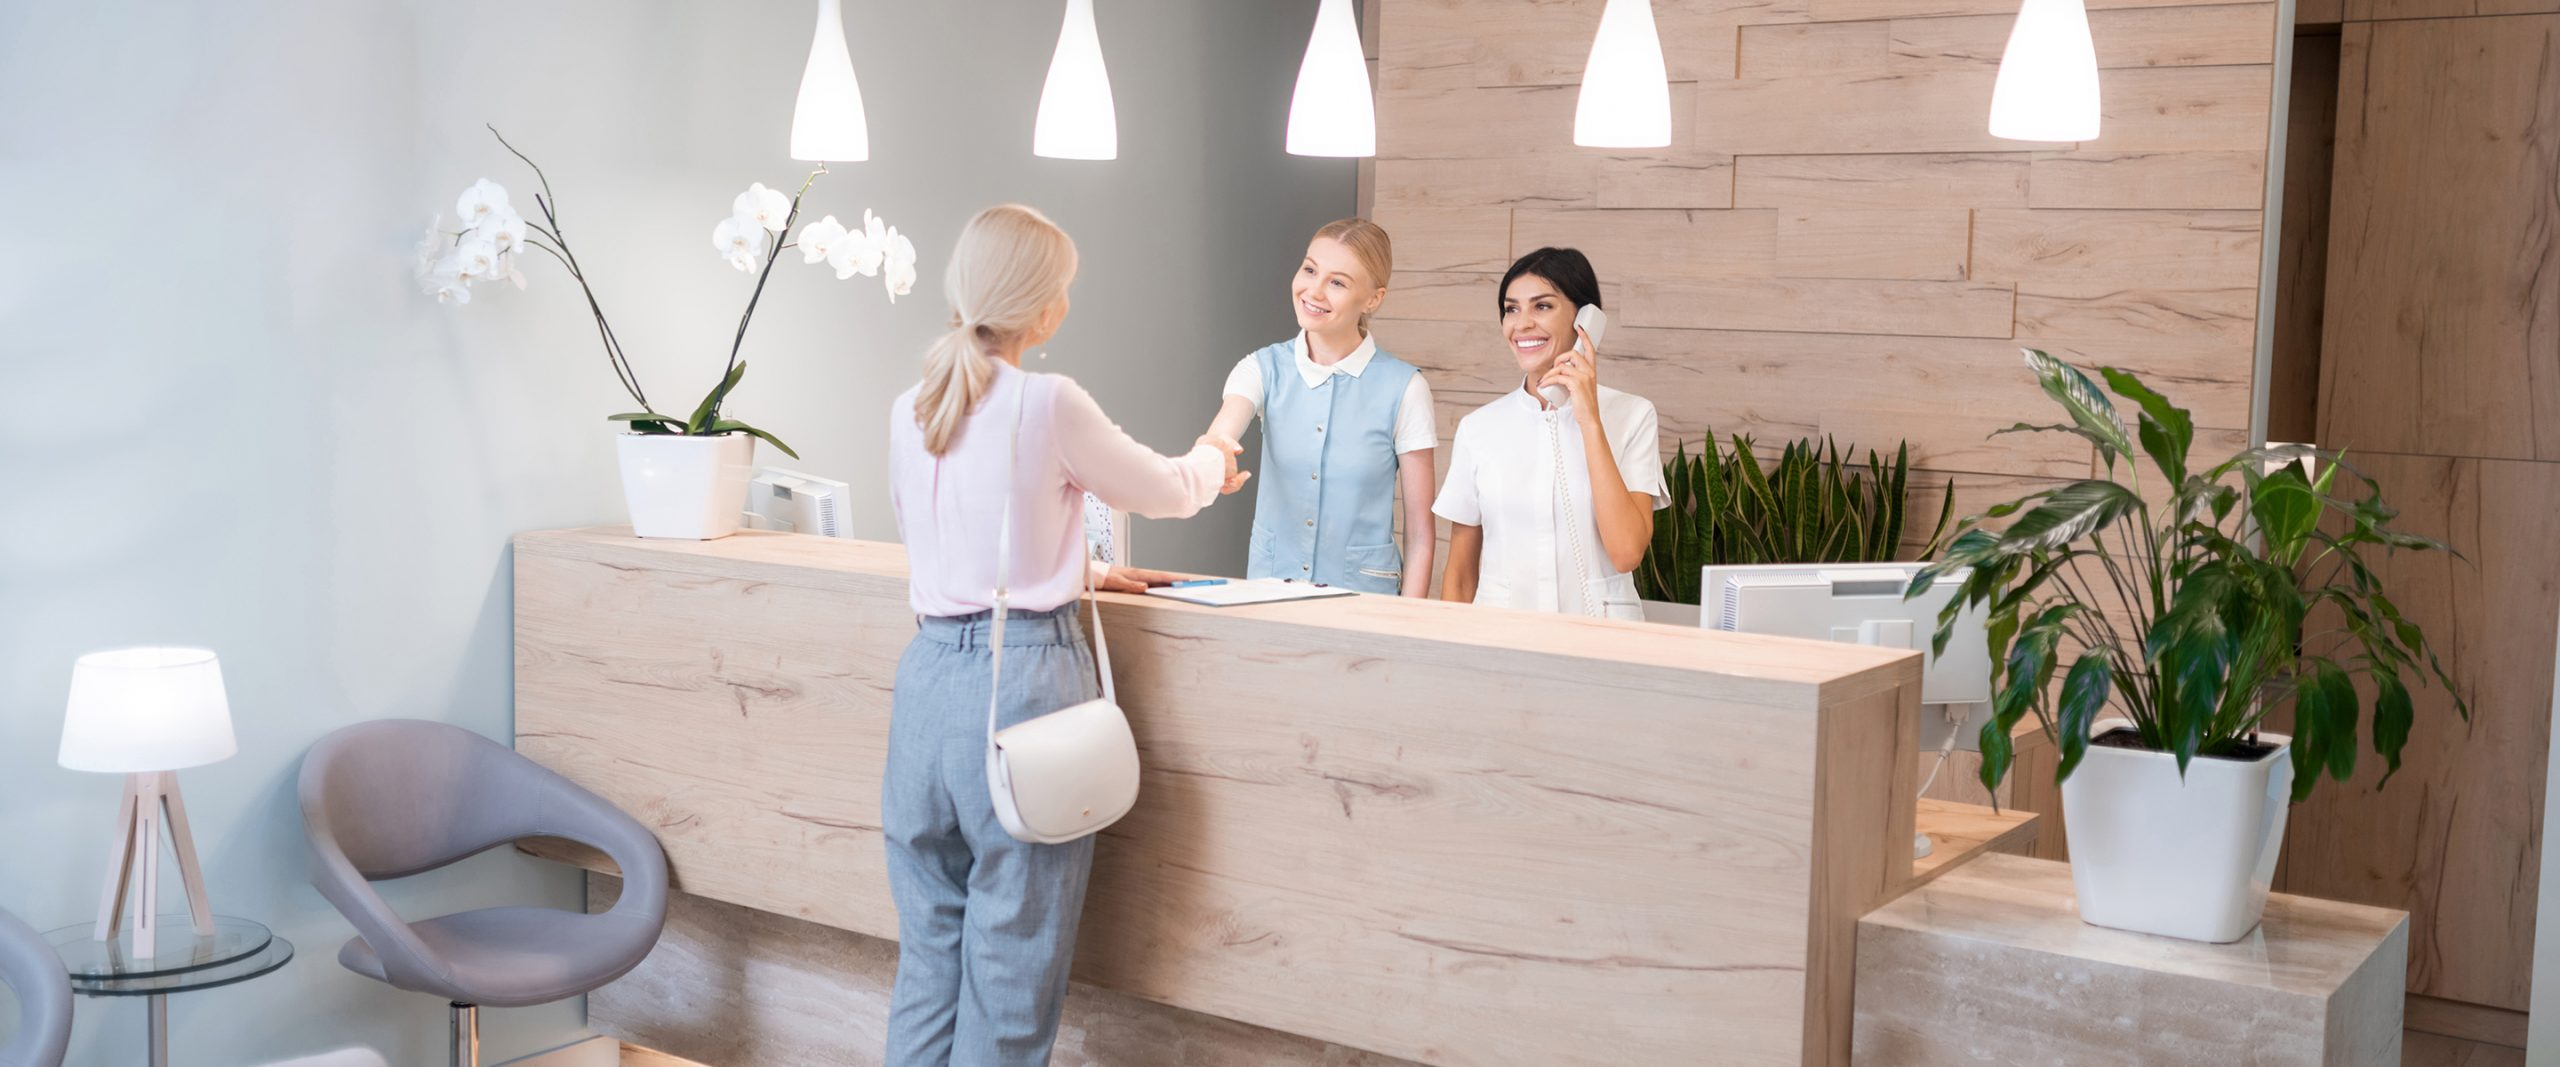 how to get more patients in a dental office